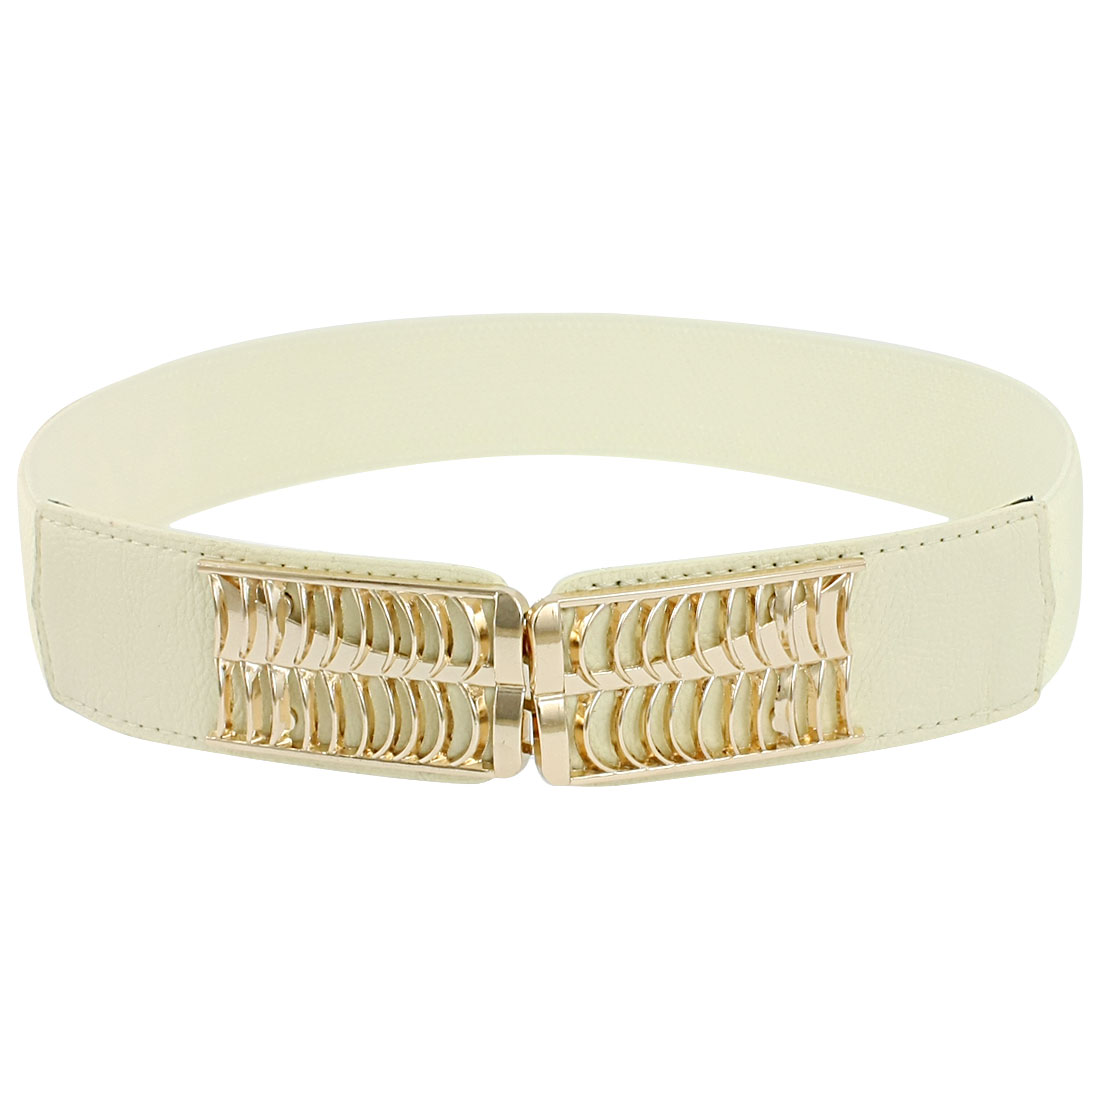 Lady Metal Interlocking Buckle Stretchy Cinch Band Waist Belt Off White